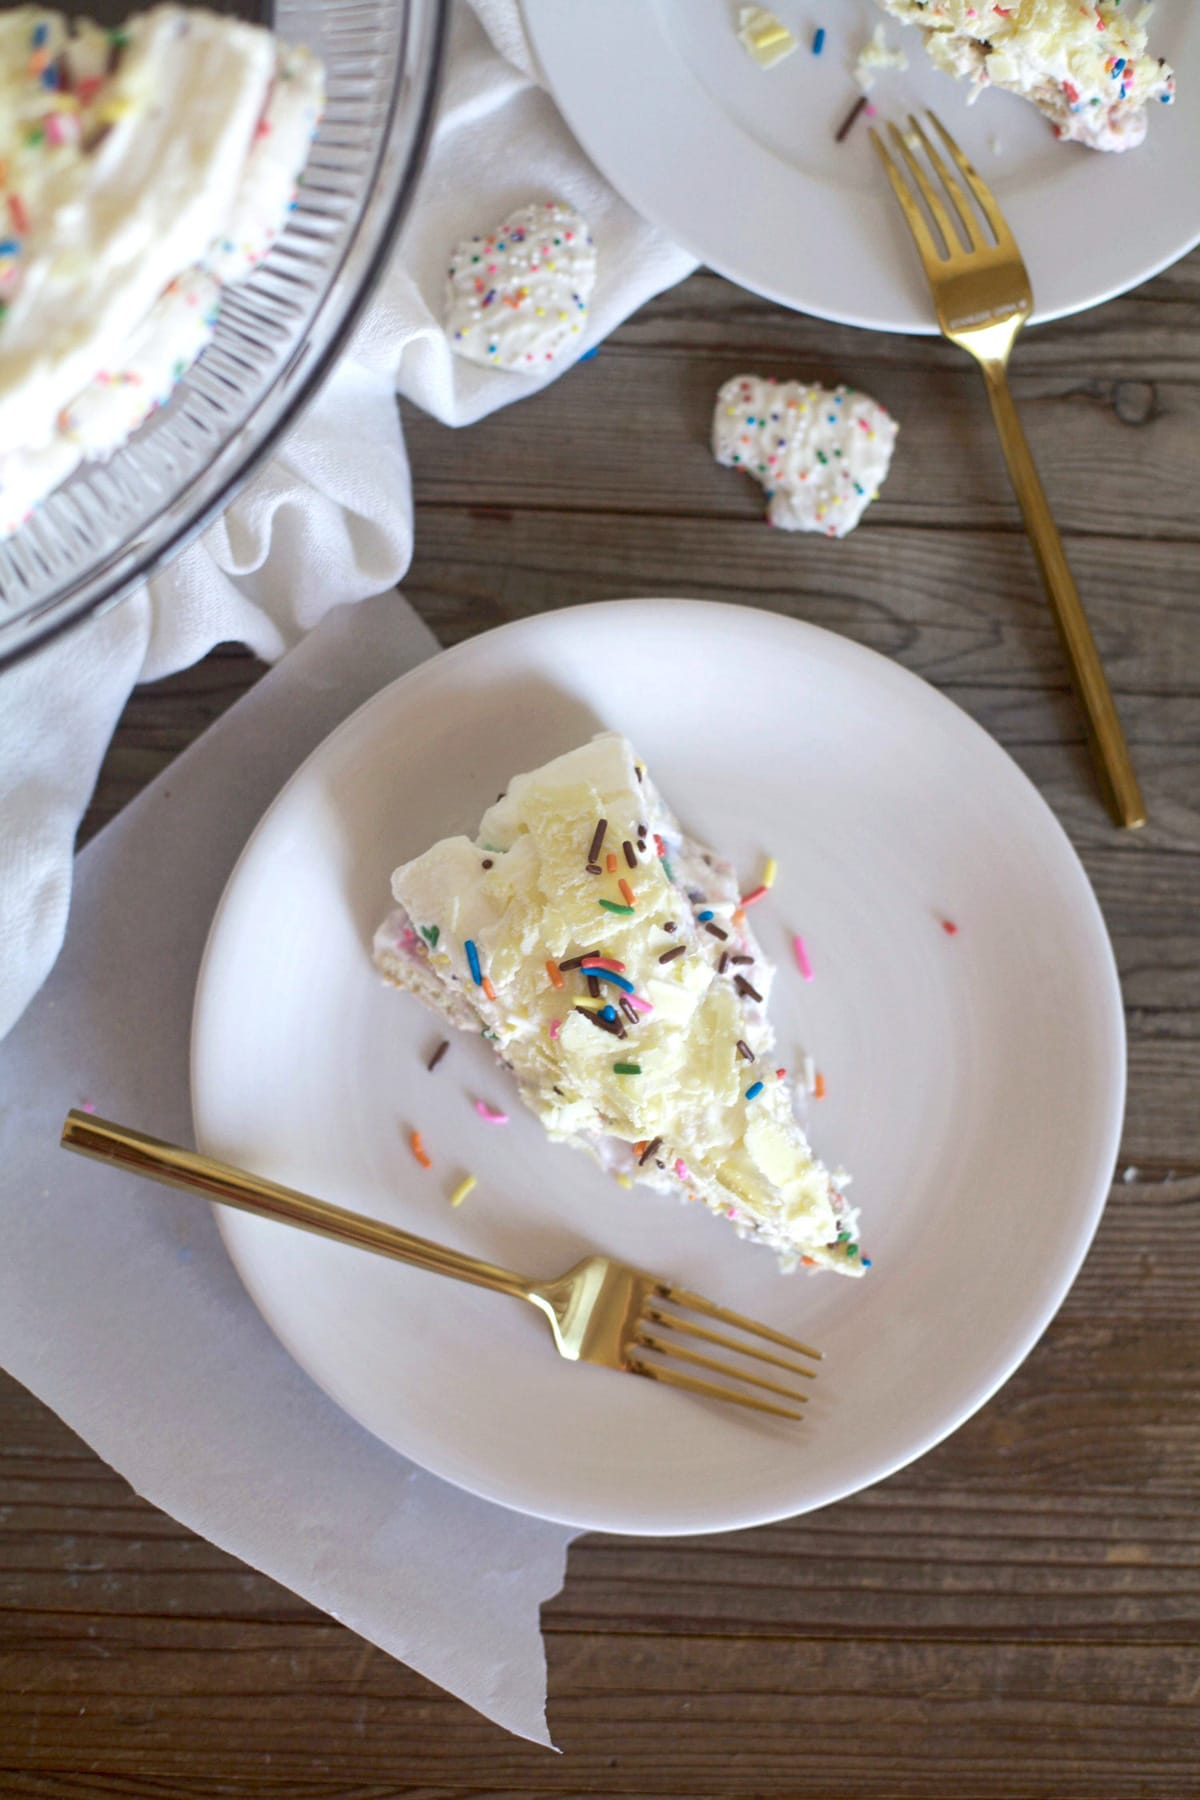 This frosted animal cracker ice box cake is just as tasty as it is pretty! - Sugar & Cloth - Recipe